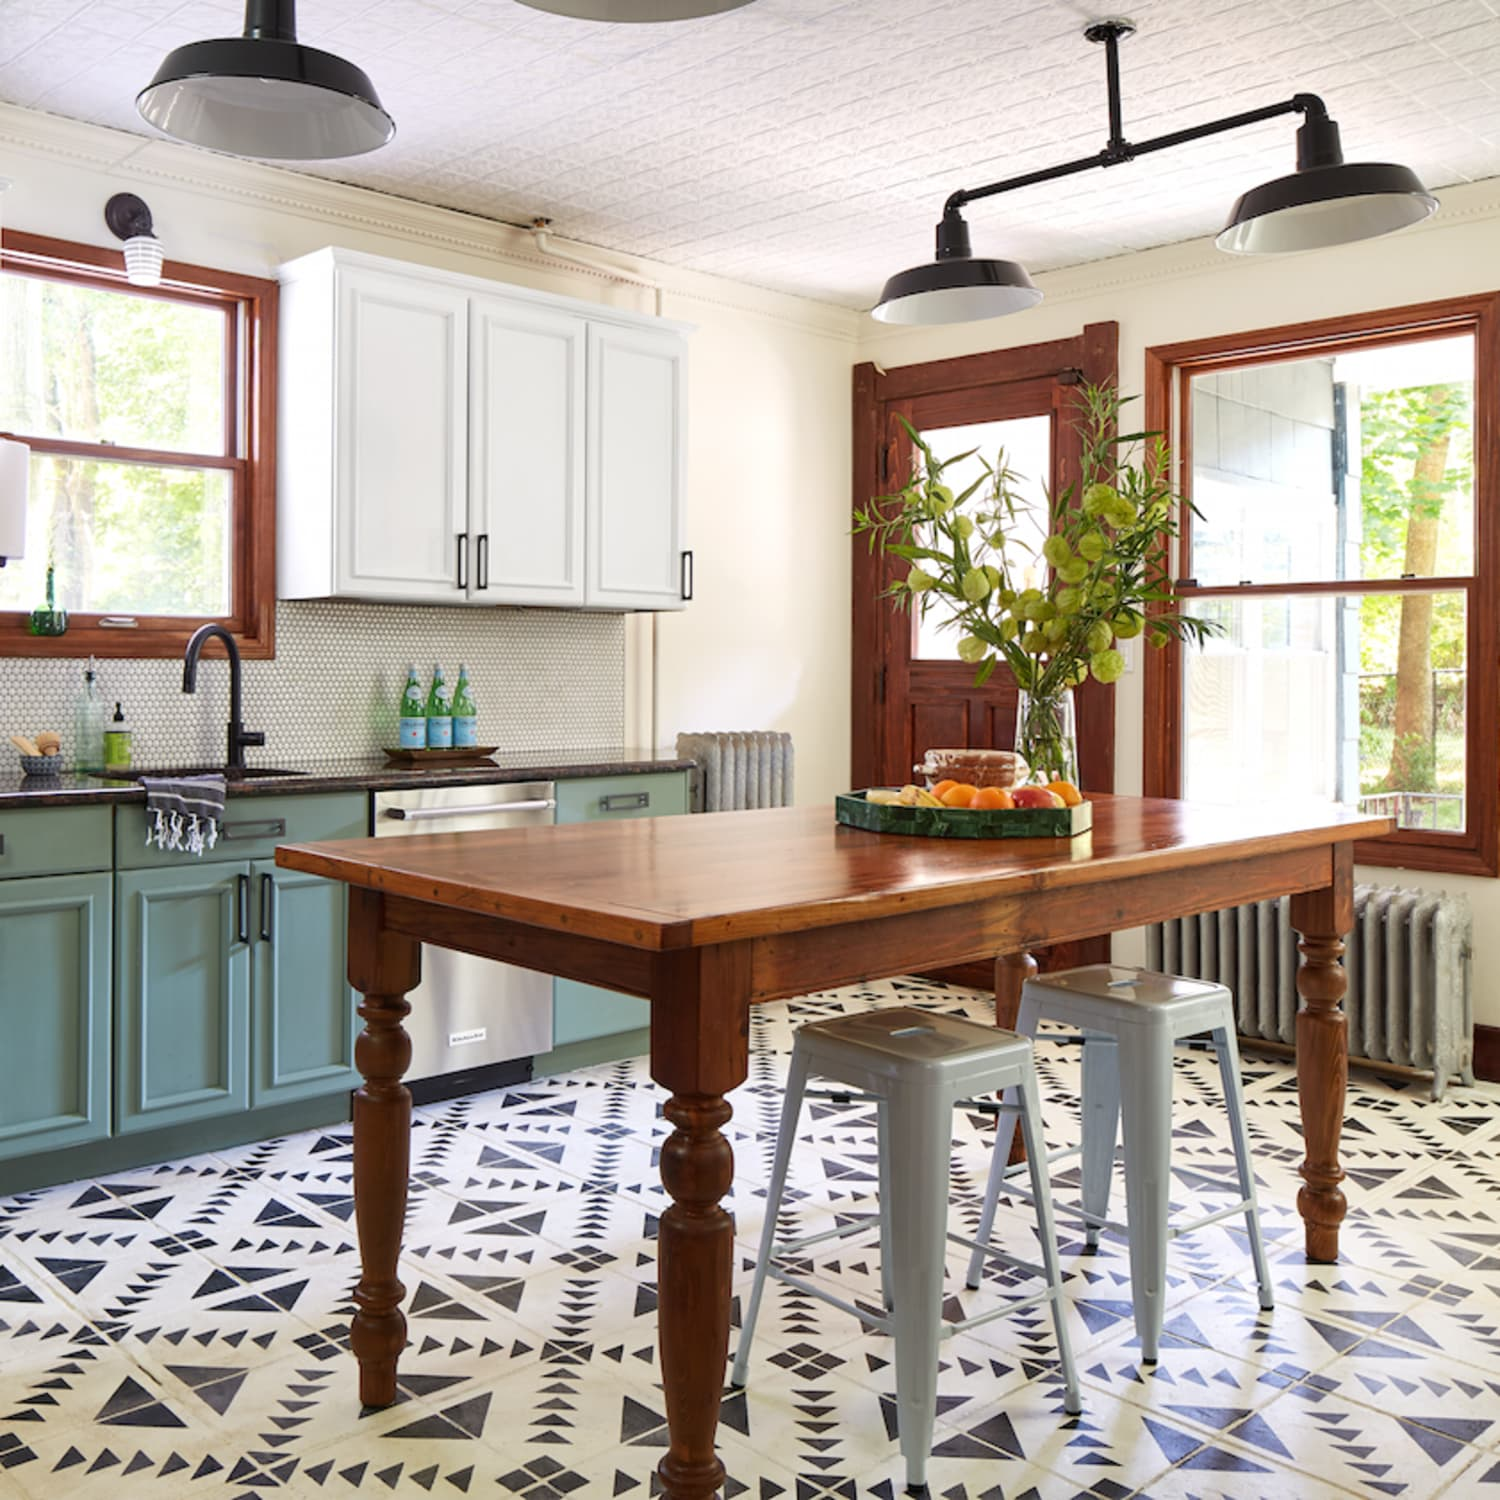 656e37c133dd Yes, You Can Paint Your Entire Kitchen with Chalk Paint | Kitchn